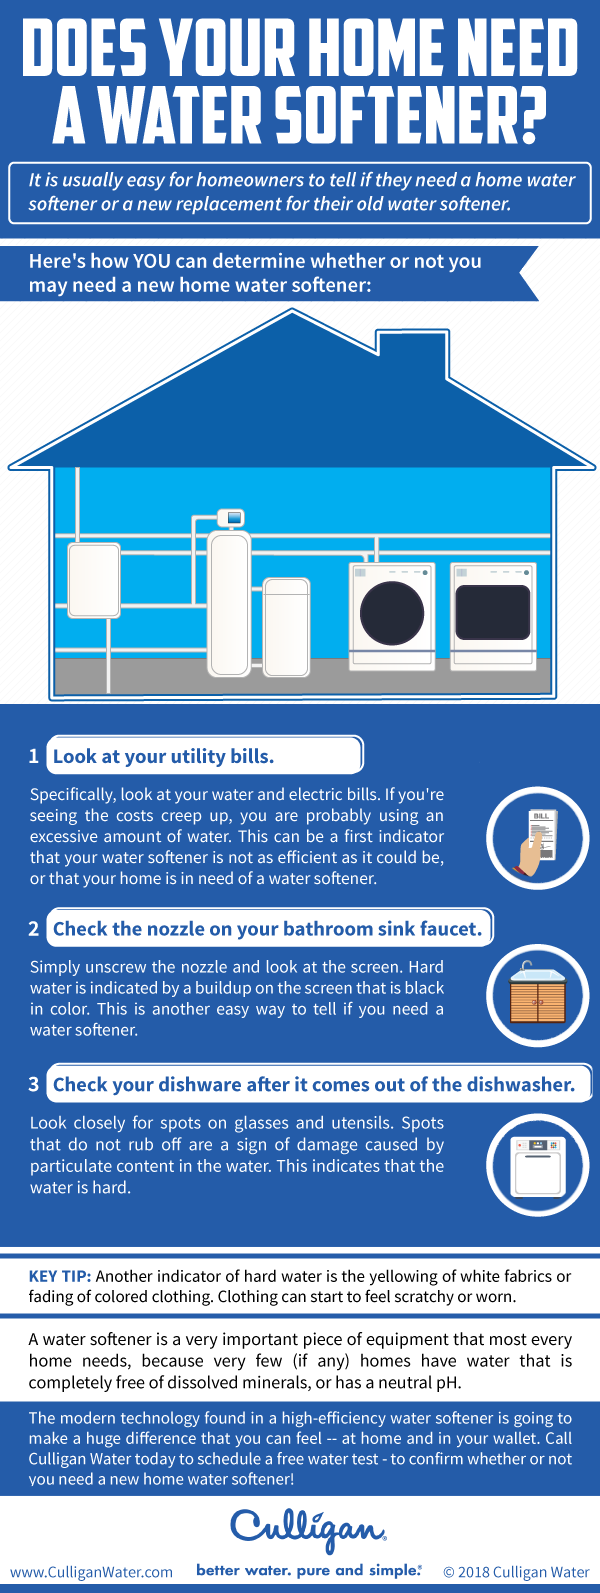 Follow This Handy Guide From Culligan To See If You Need A Water Softener For Your Home Water Softener Best Water Filter Water Softener System